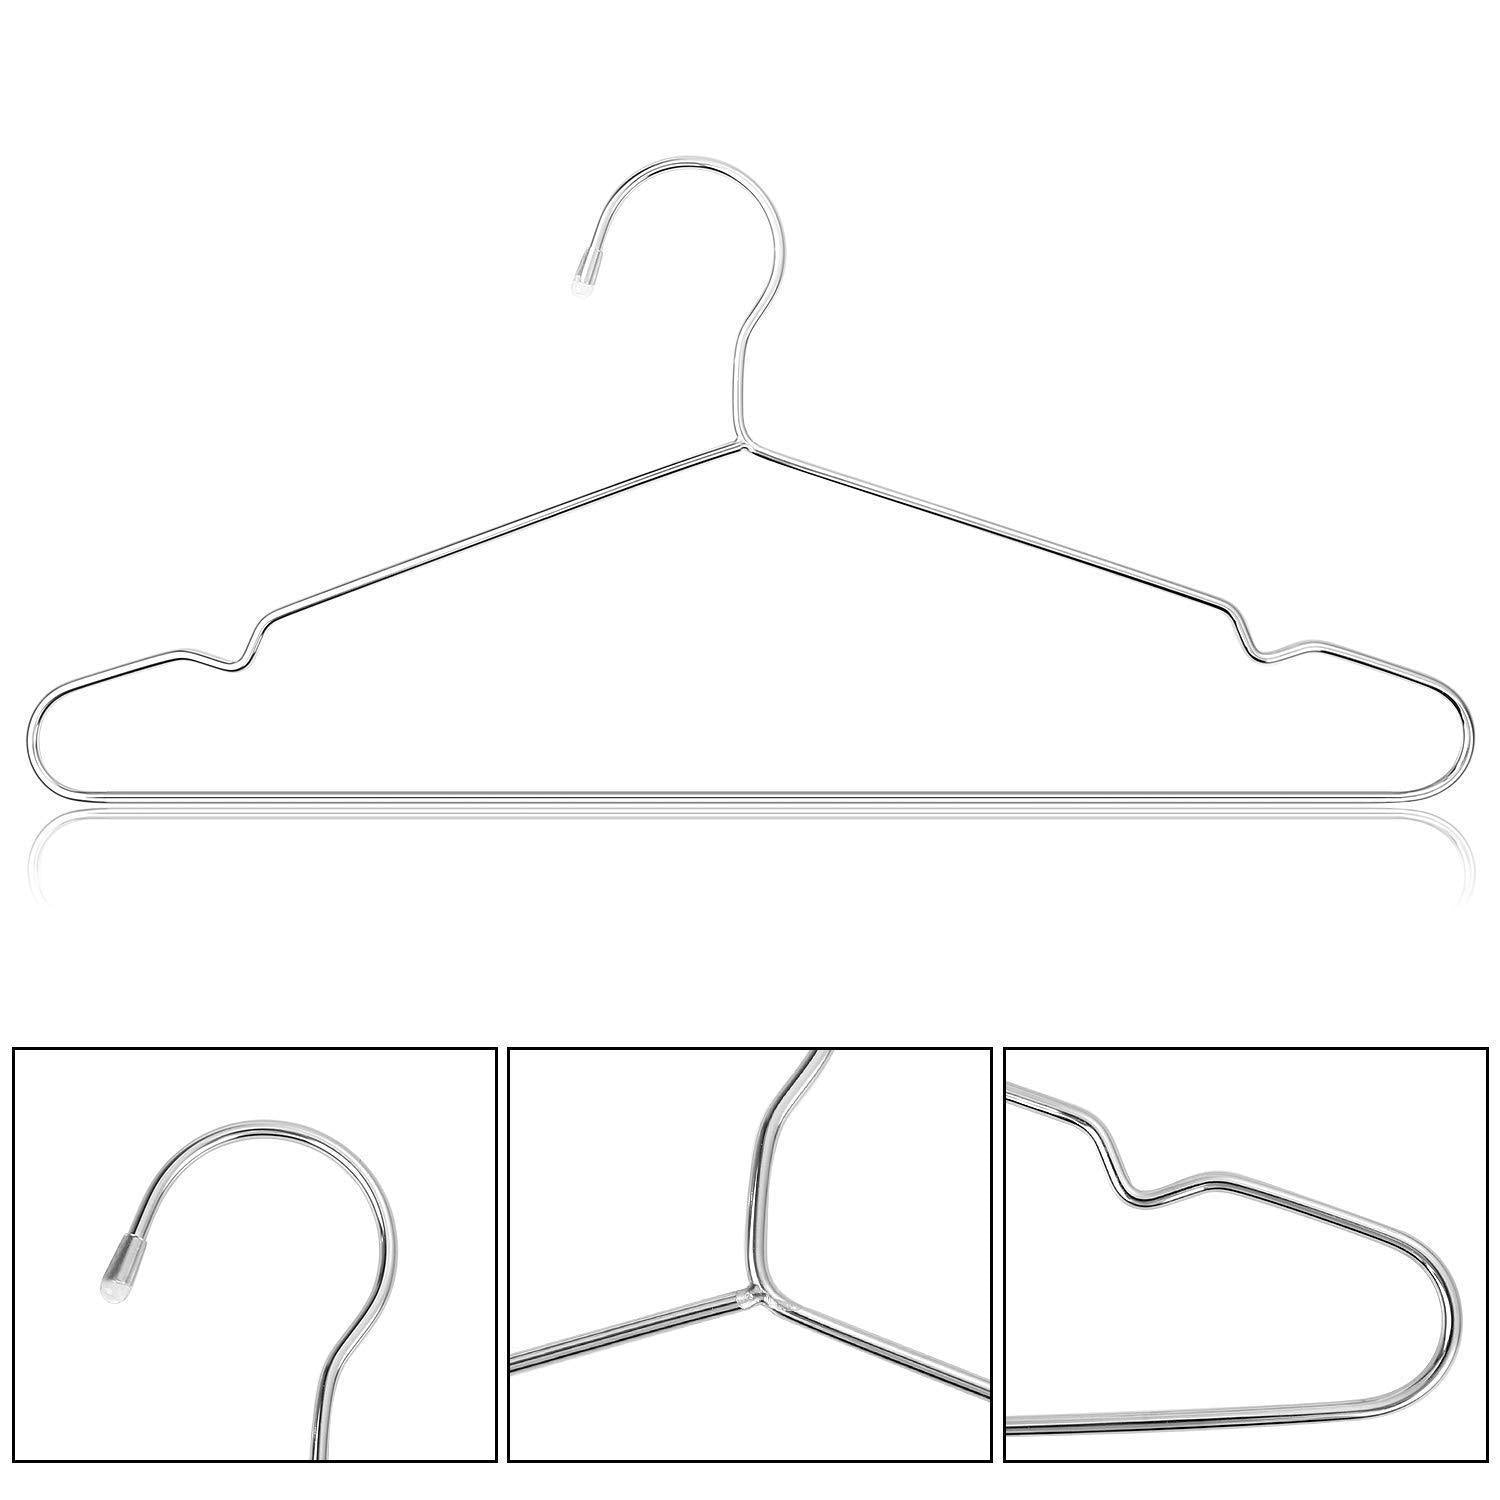 Top origa 20 pack stainless steel strong metal wire hangers 16 5 inch coat hanger standard suit hangers clothes hanger